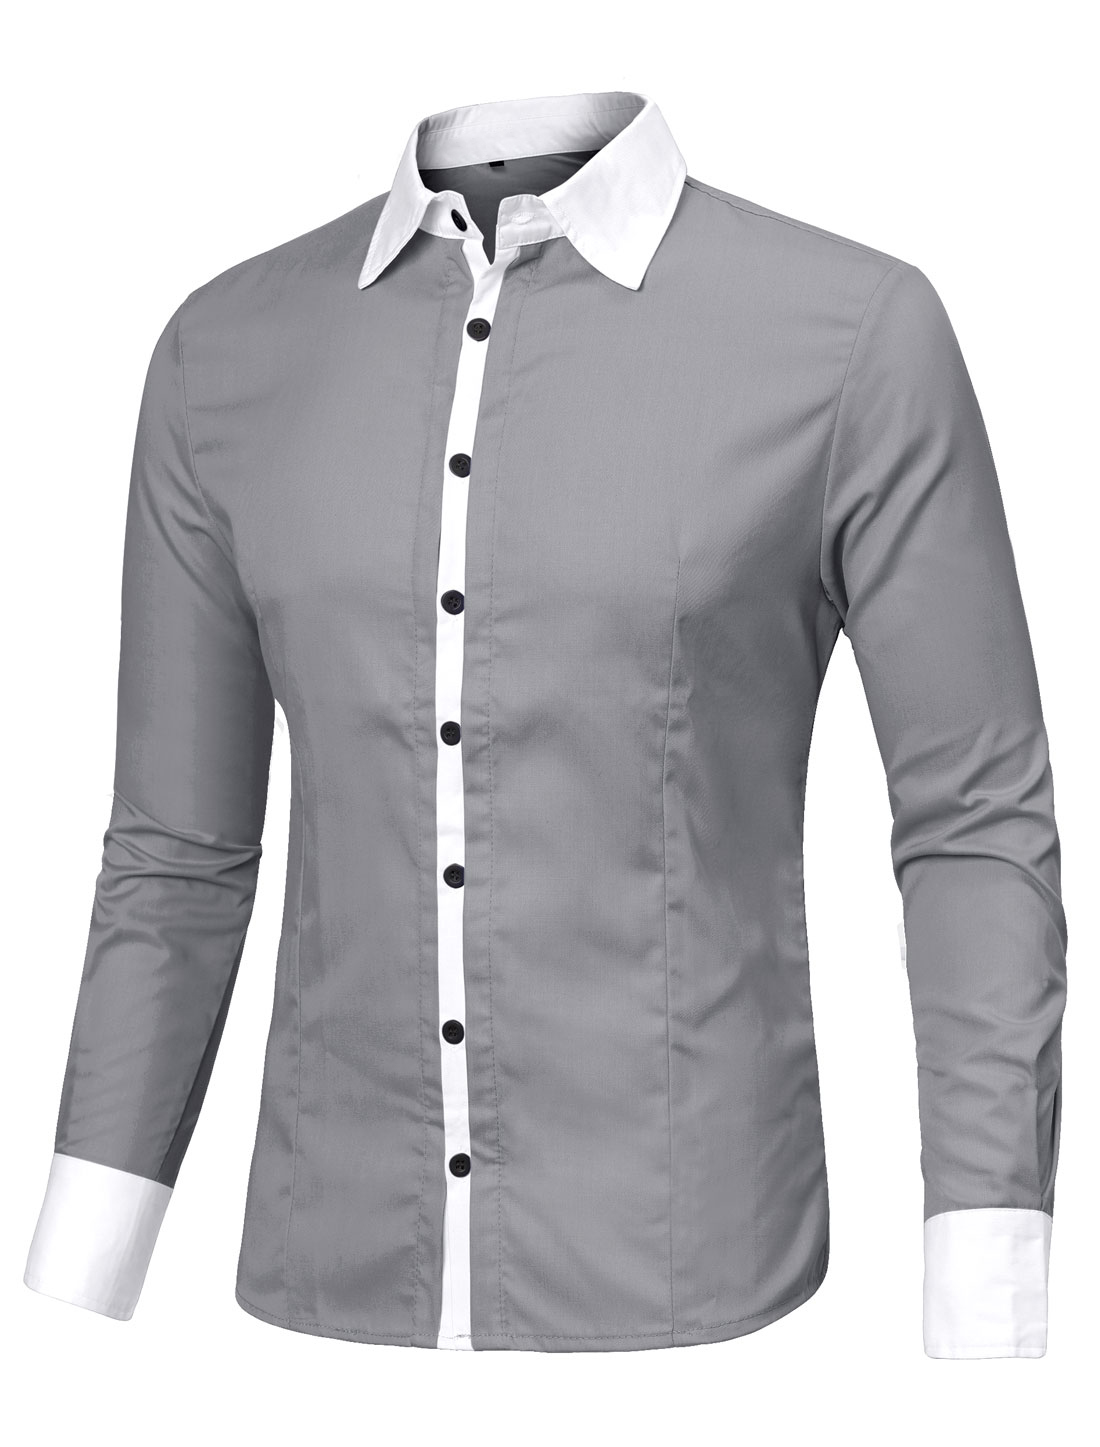 Men Long-Sleeved Single Breasted Slim Fit Shirt Light Gray M